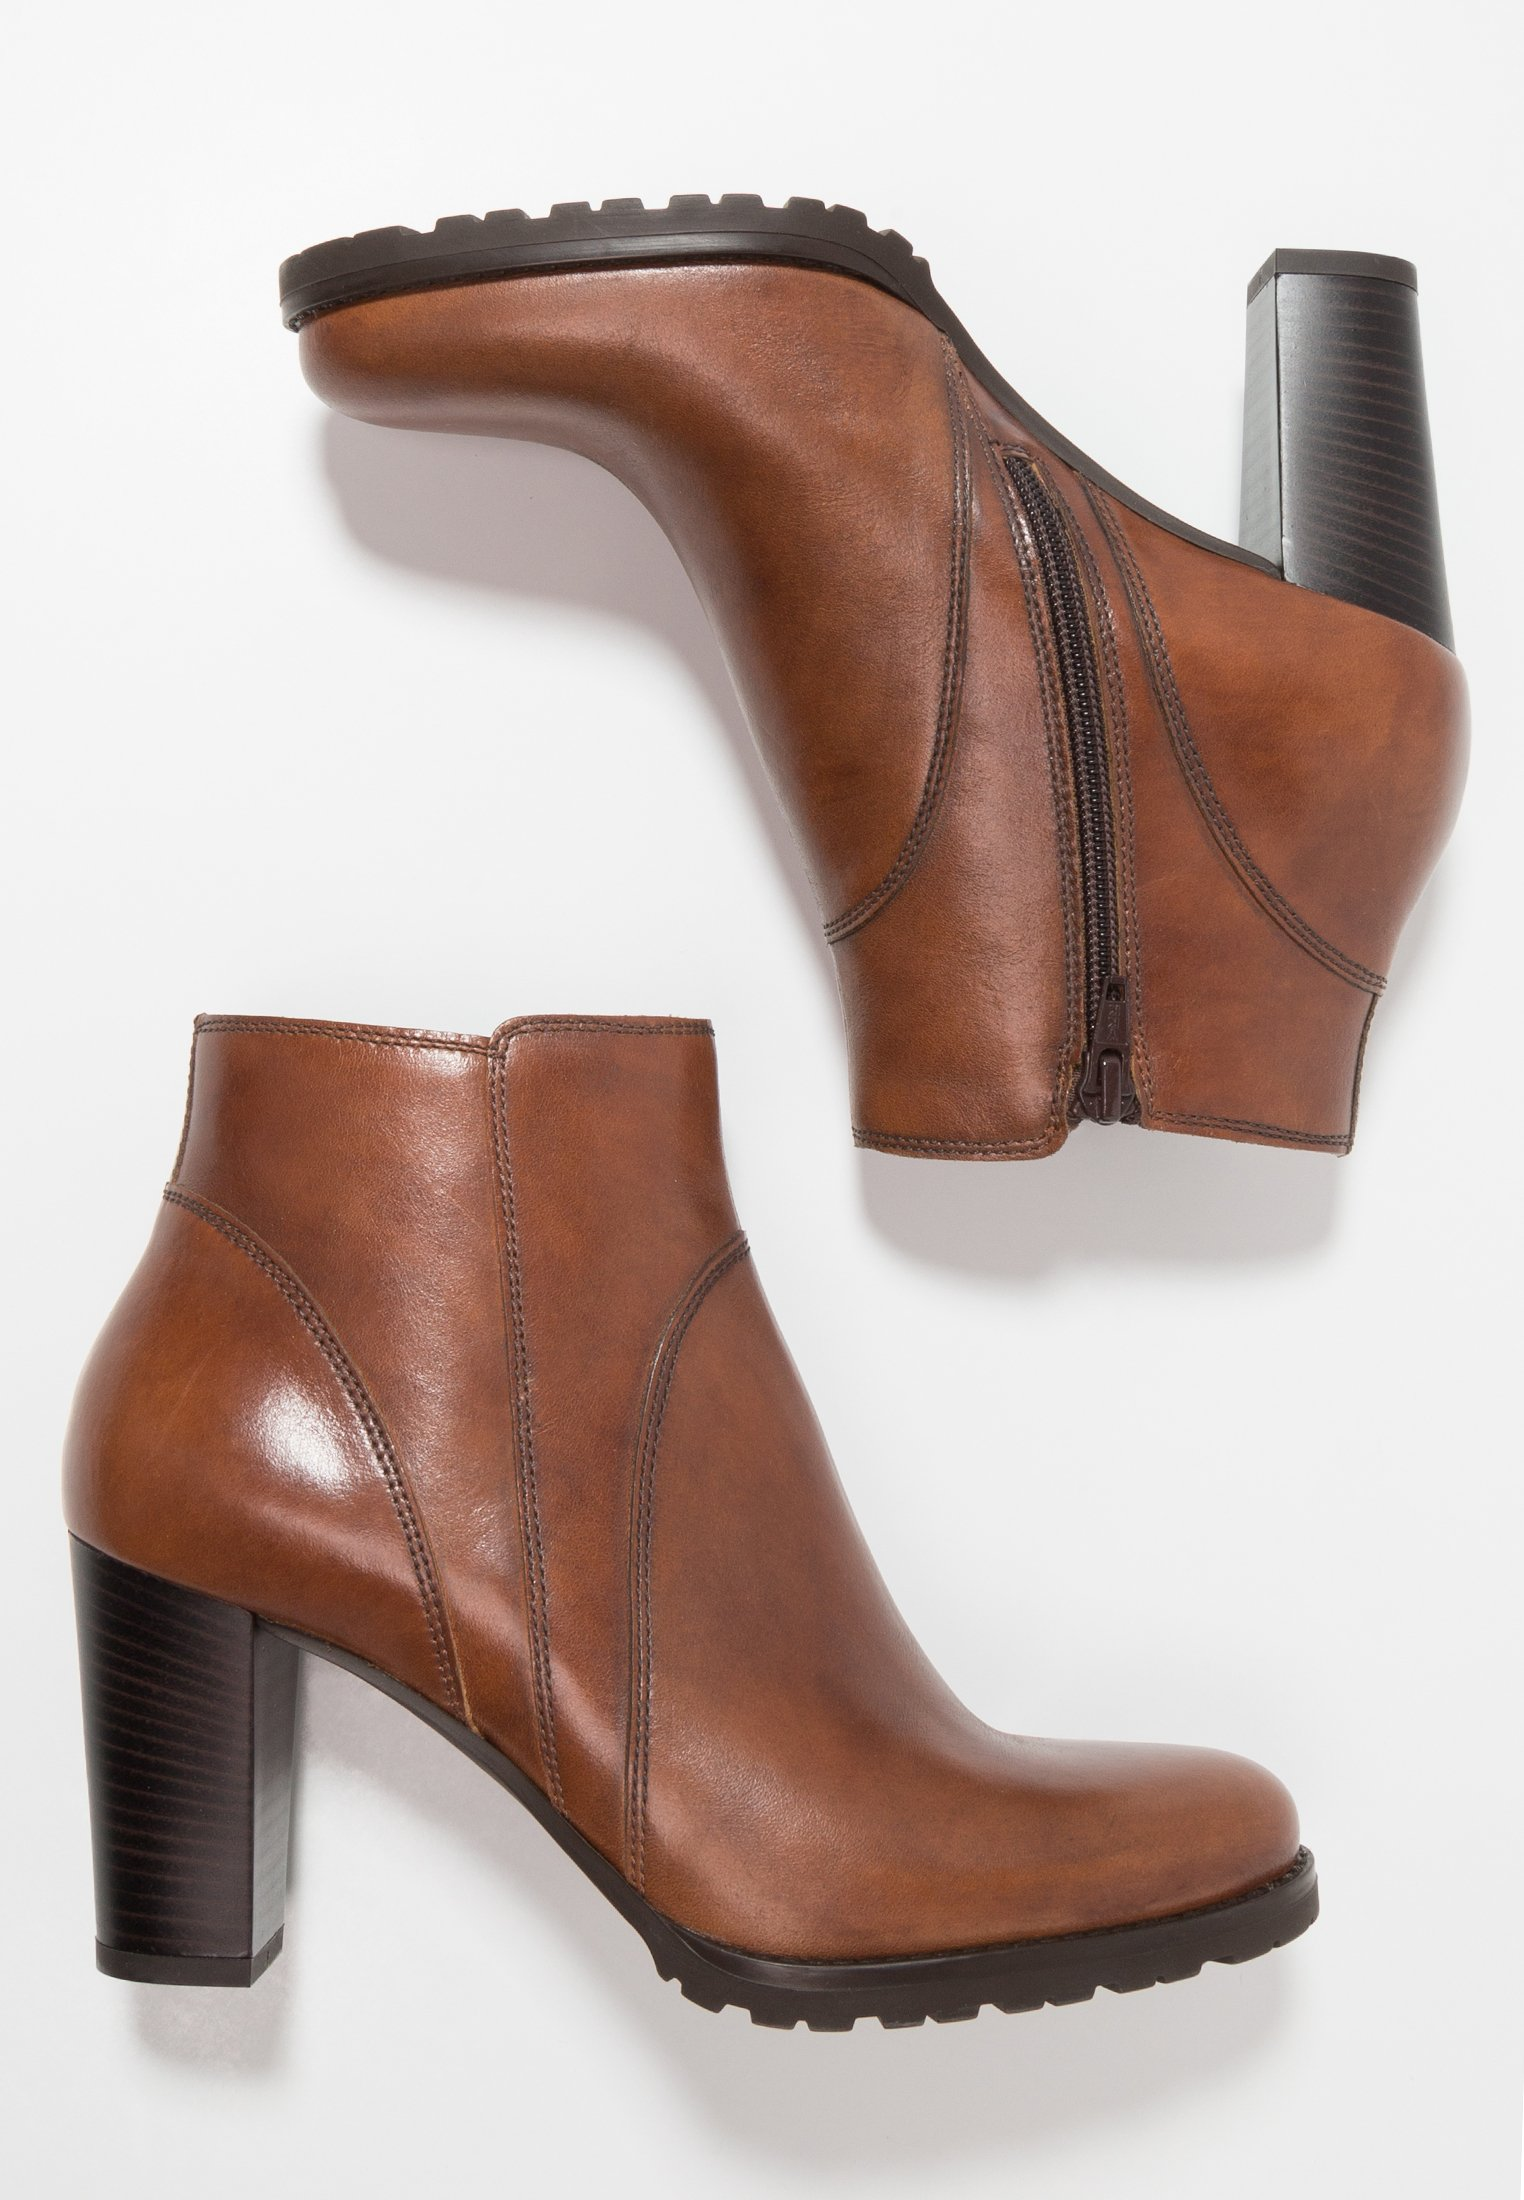 Pier One Ankelboots - Brown